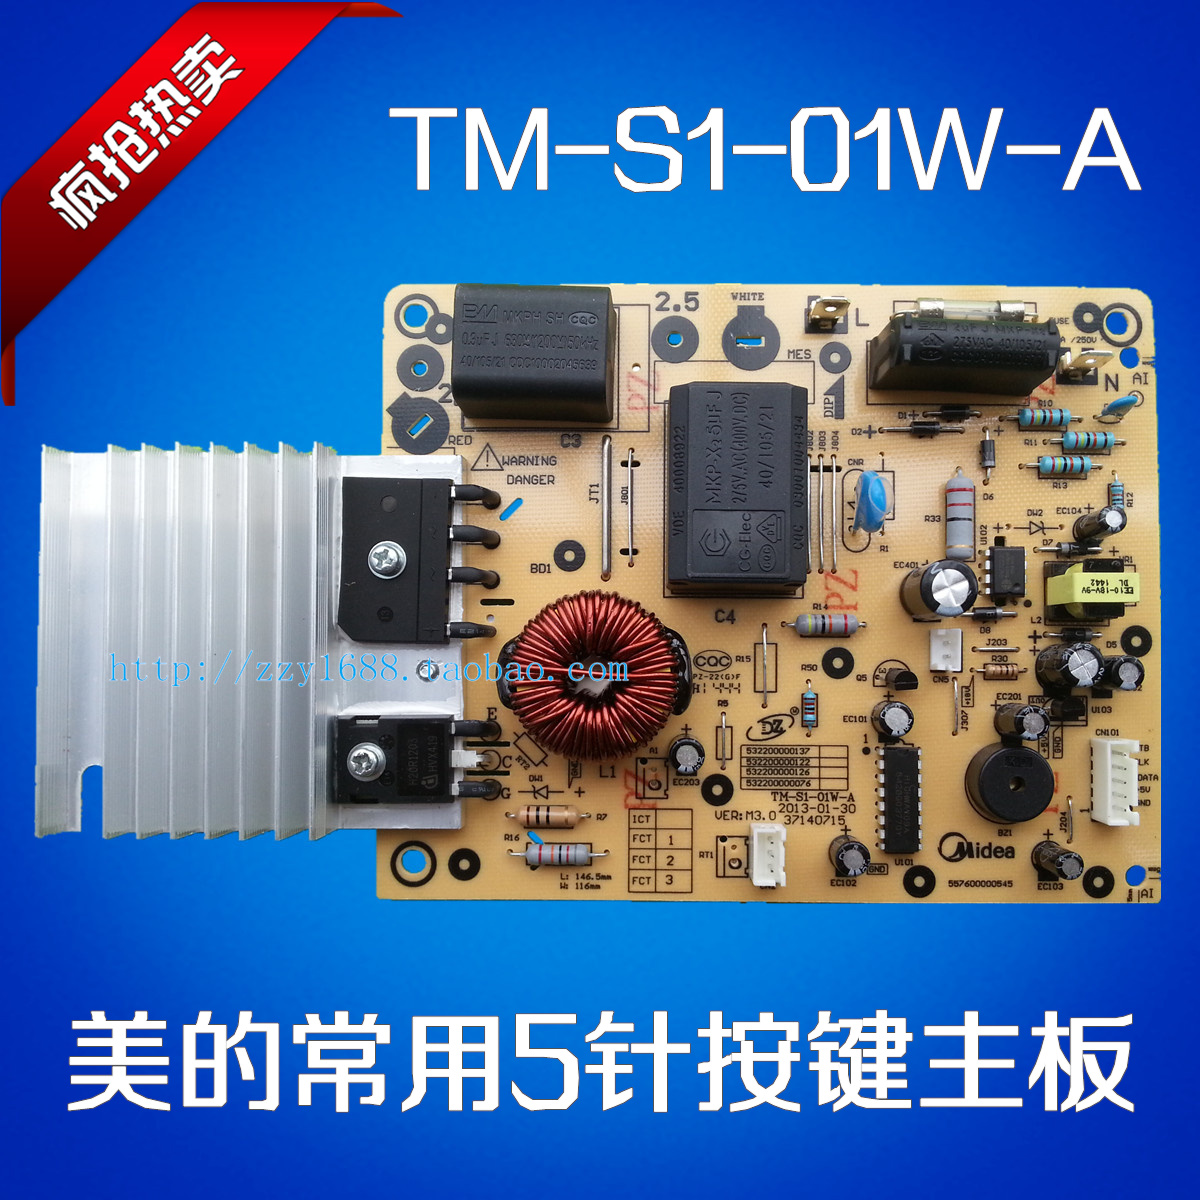 Midea Oven Main Board Sk2101 2102 2103 2105 Rk2106 Power Control Circuit Induction Cooker Buy 5 Pin Fittings